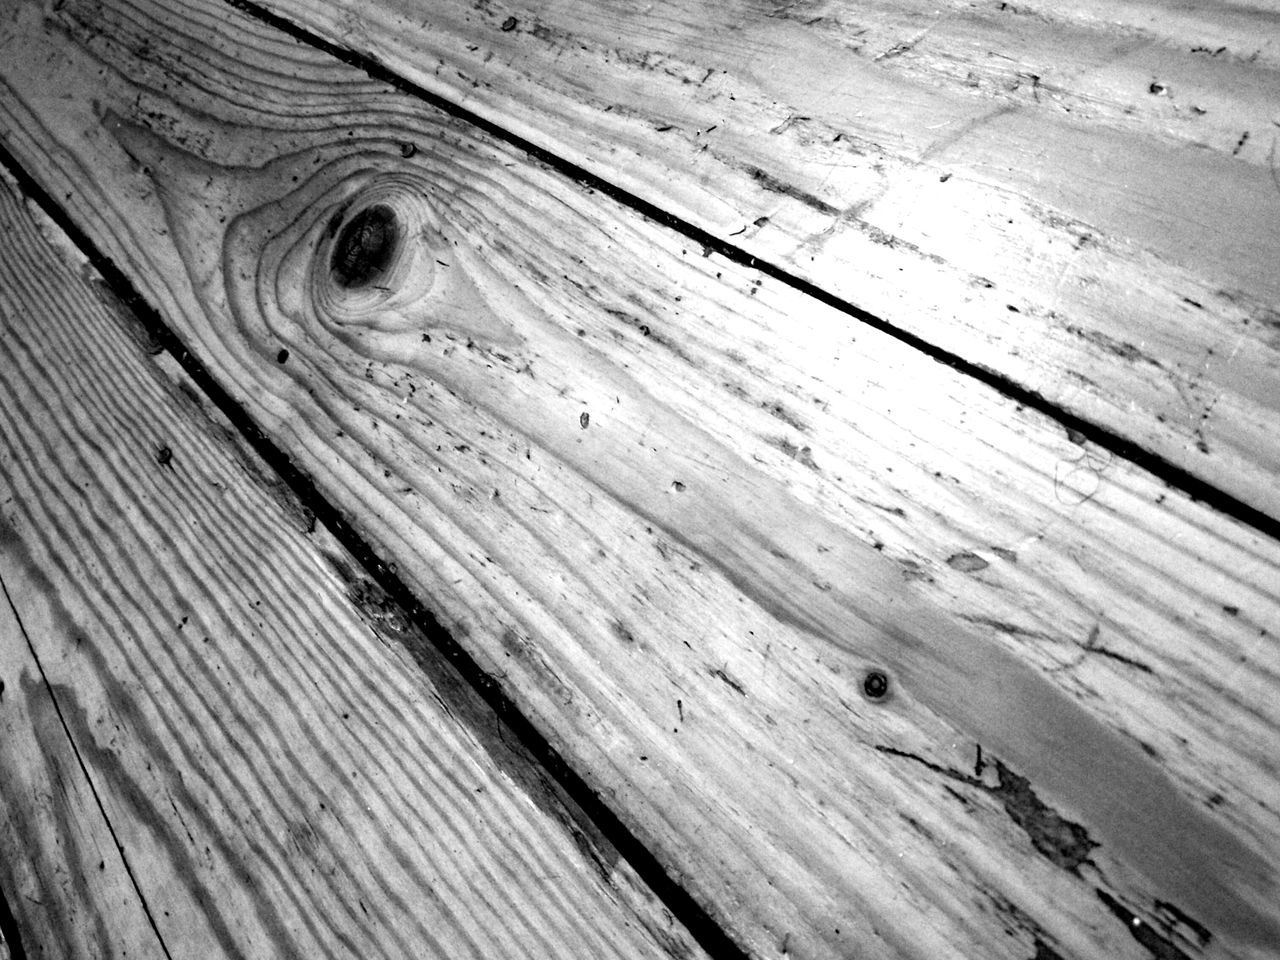 Wood - Material Plank Textured  Backgrounds Close-up Detail Natural Pattern Full Frame Hardwood Floor Wood Paneling No Edit/no Filter Selective Focus Geometric Shape EyeEm Bnw Bnw Architecture Other Perspectives Indoors